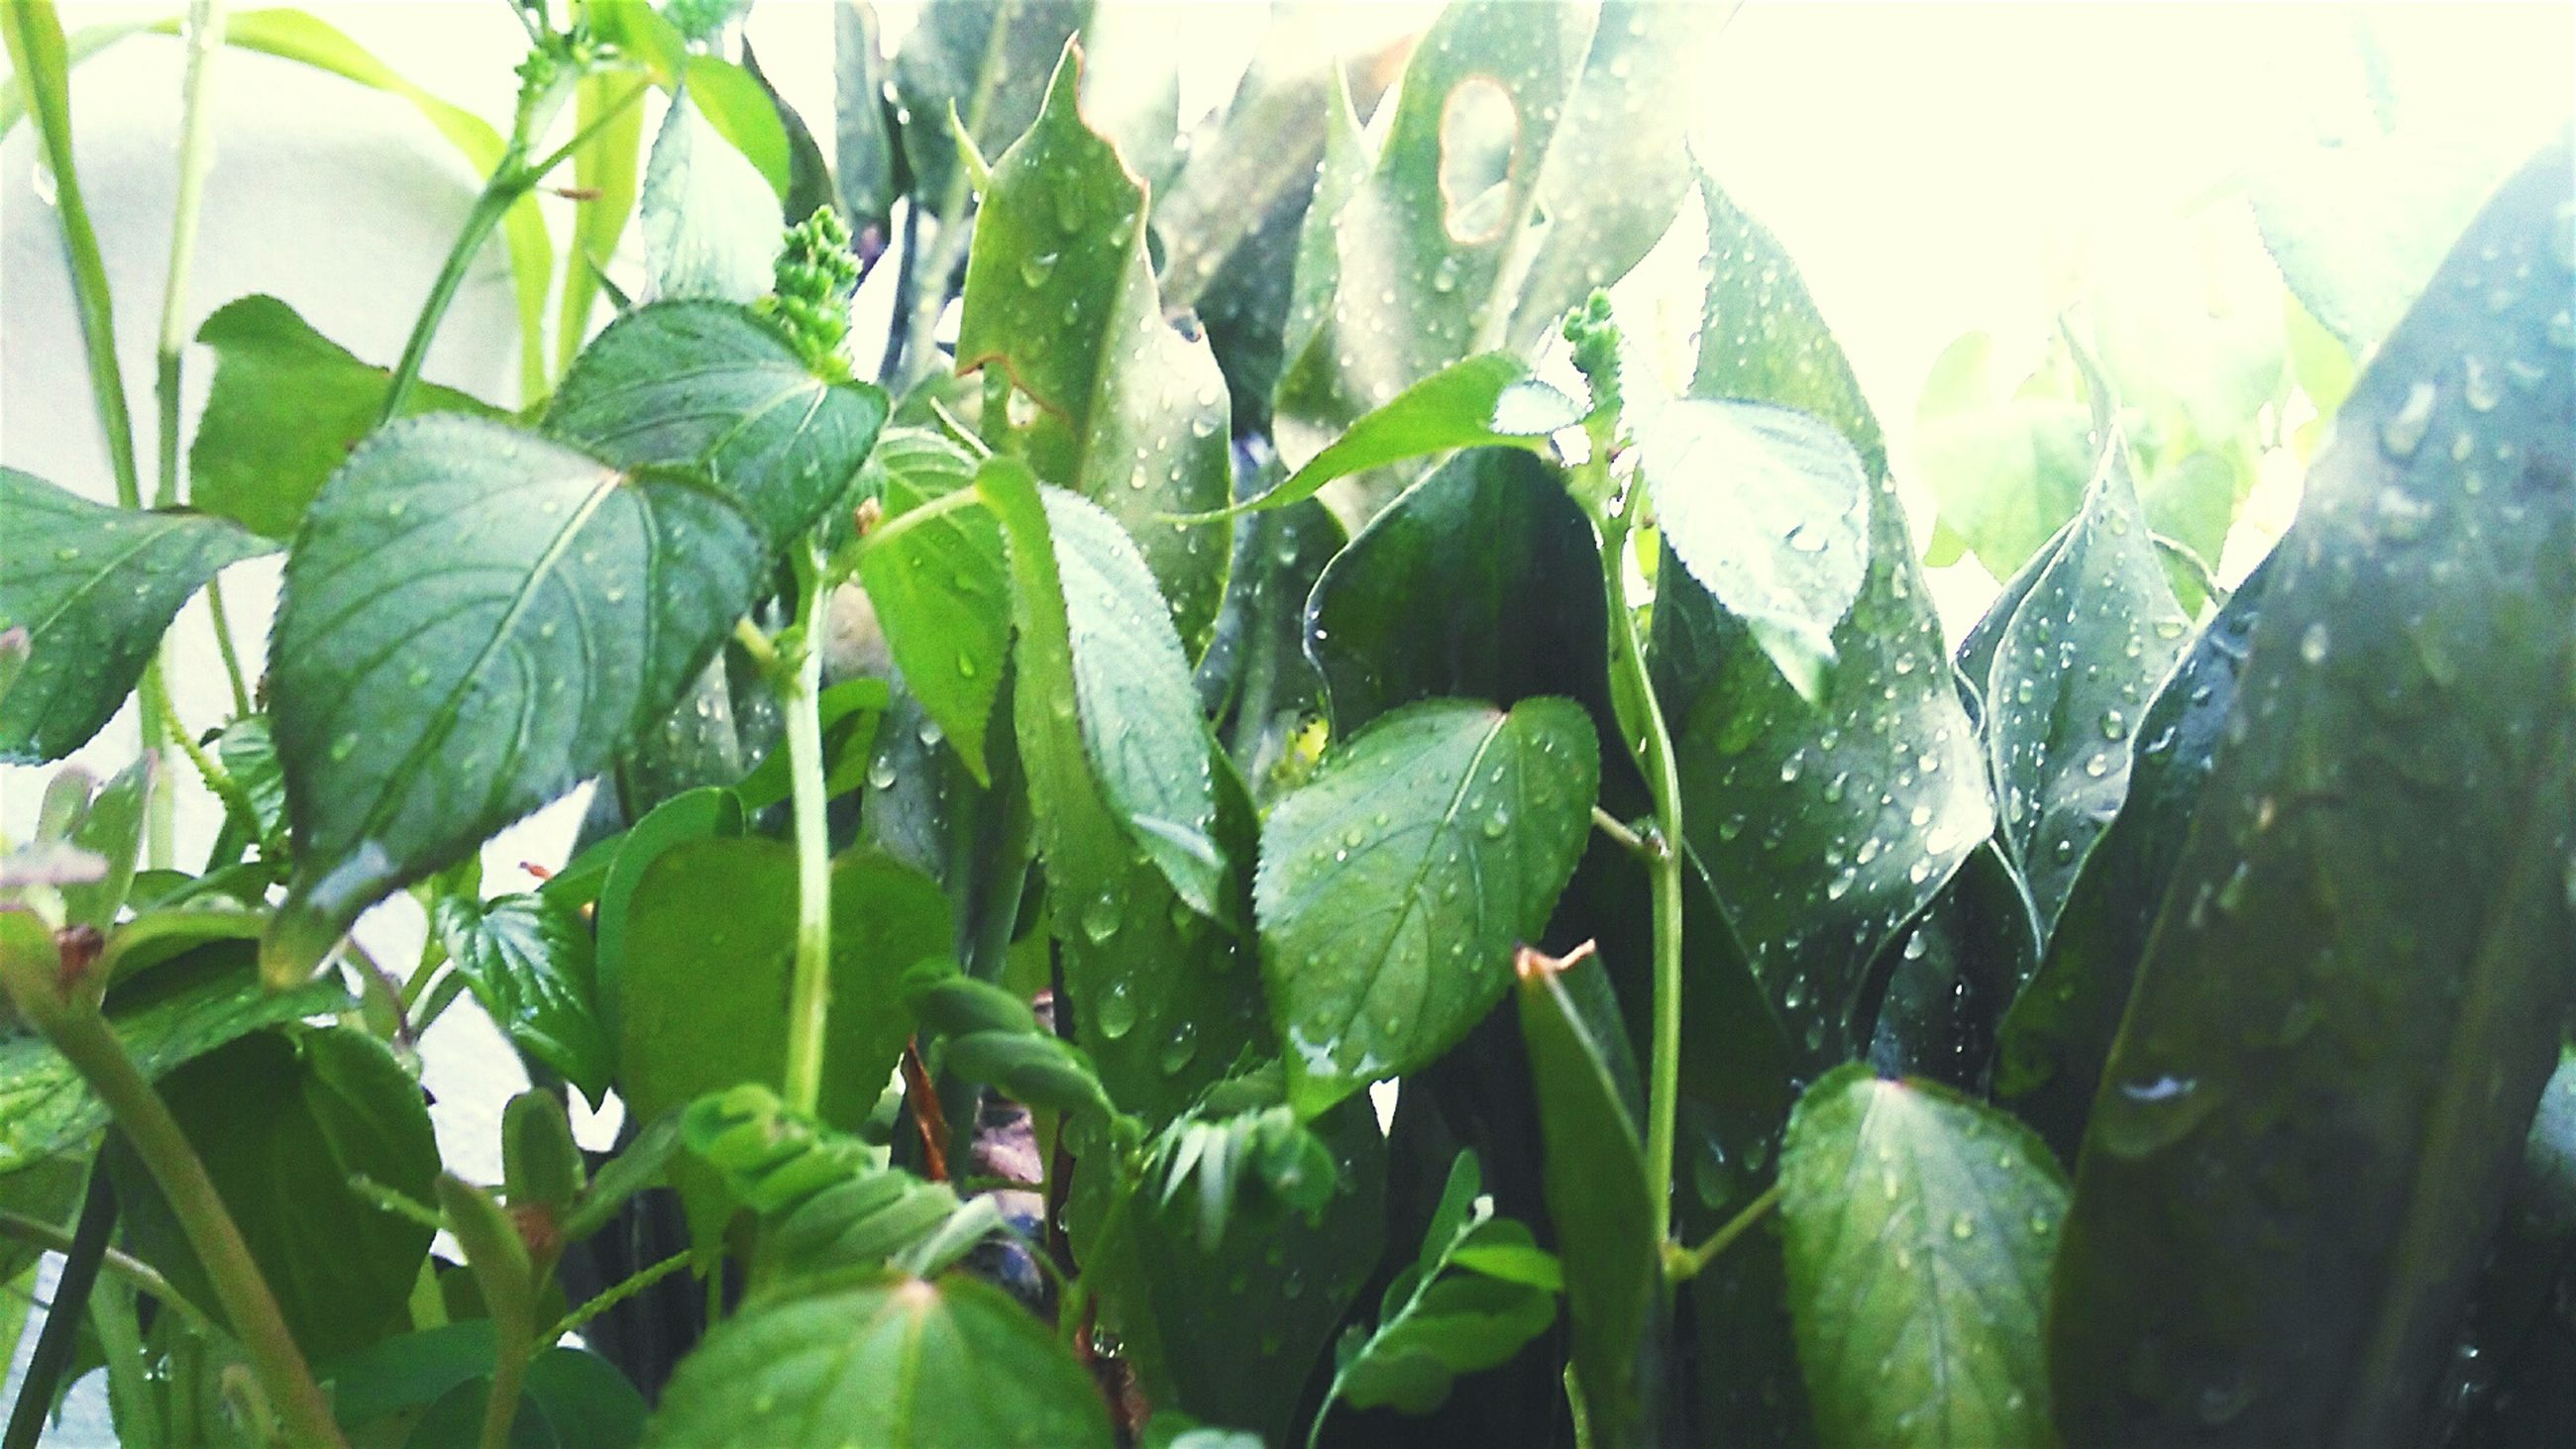 drop, leaf, wet, green color, plant, close-up, water, dew, green, selective focus, growth, nature, freshness, botany, beauty in nature, day, outdoors, sky, blade of grass, vibrant color